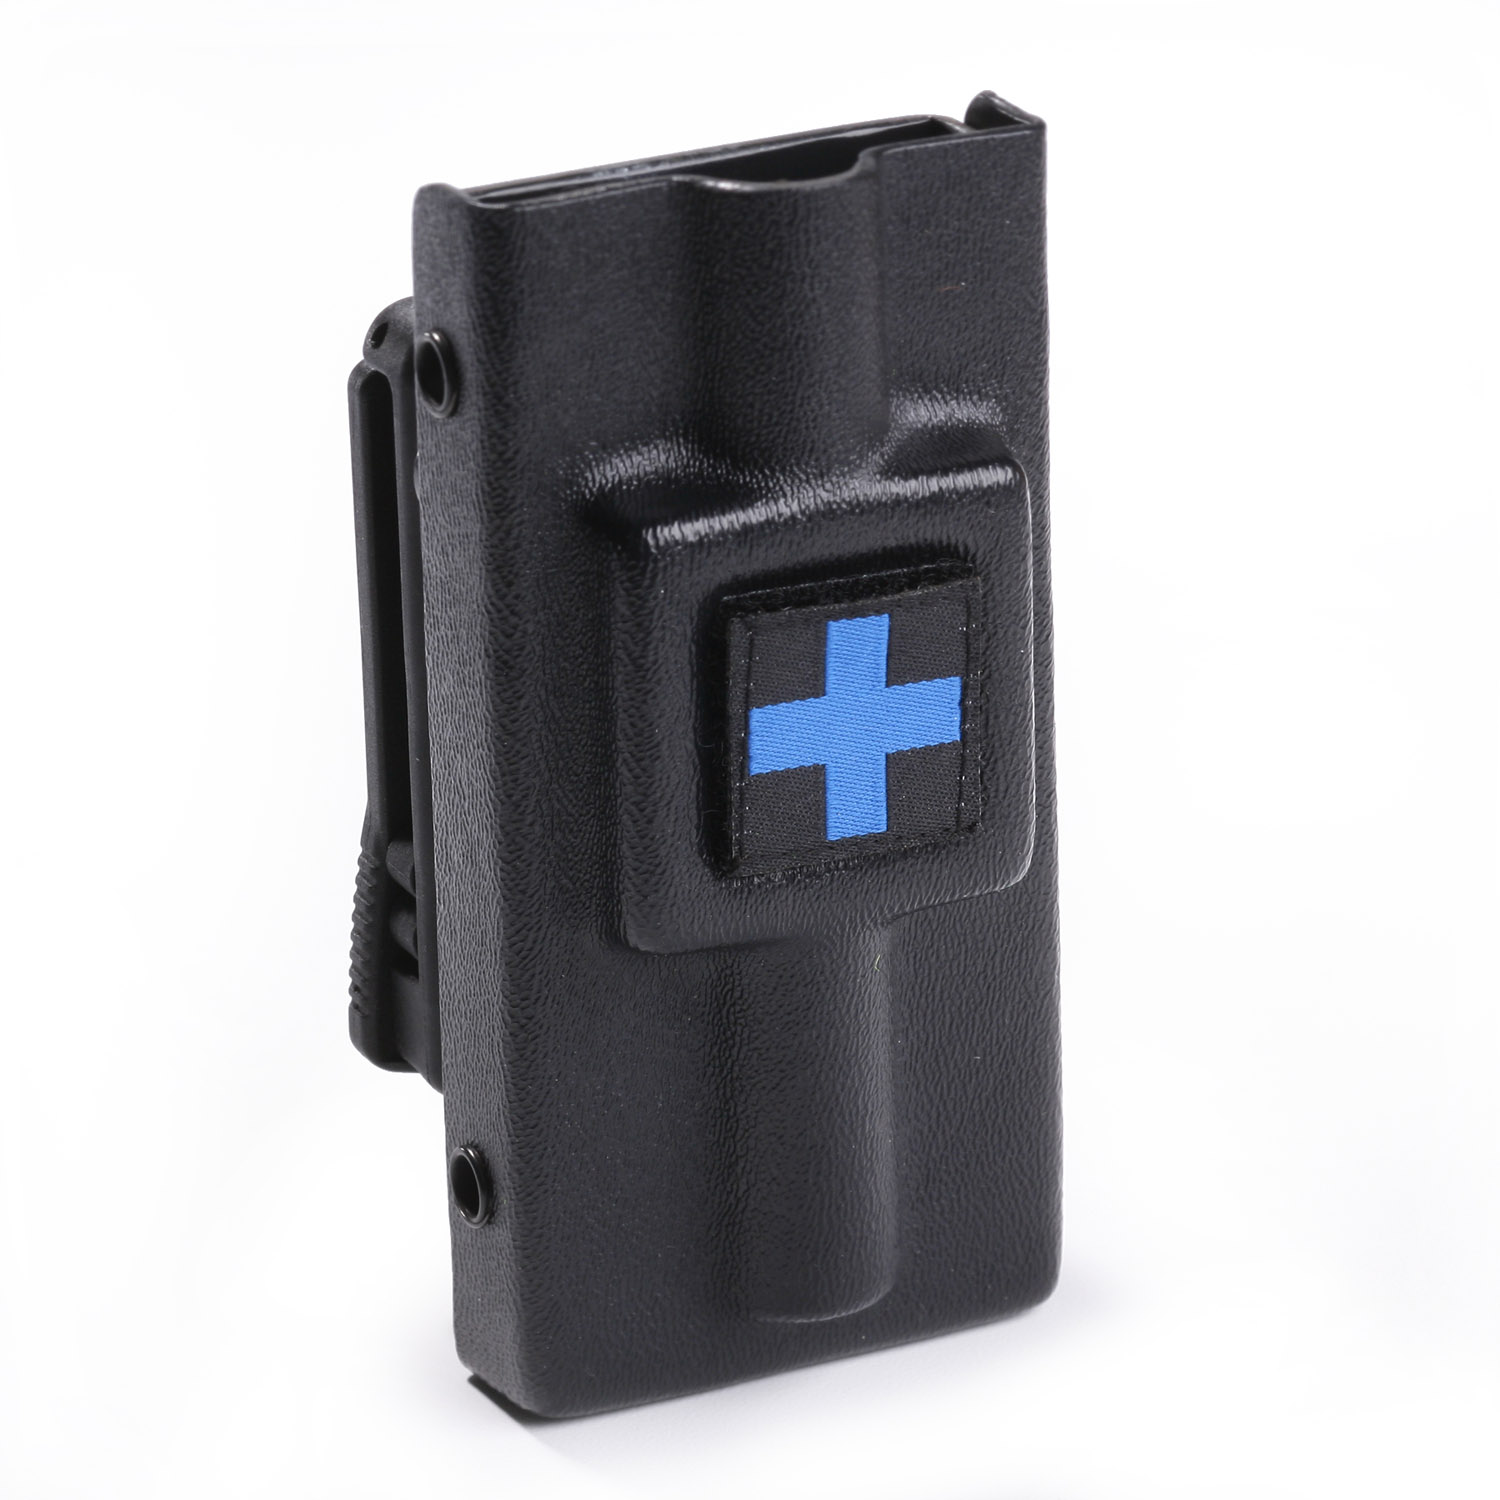 North American Rescue C-A-T Kydex Belt Holder